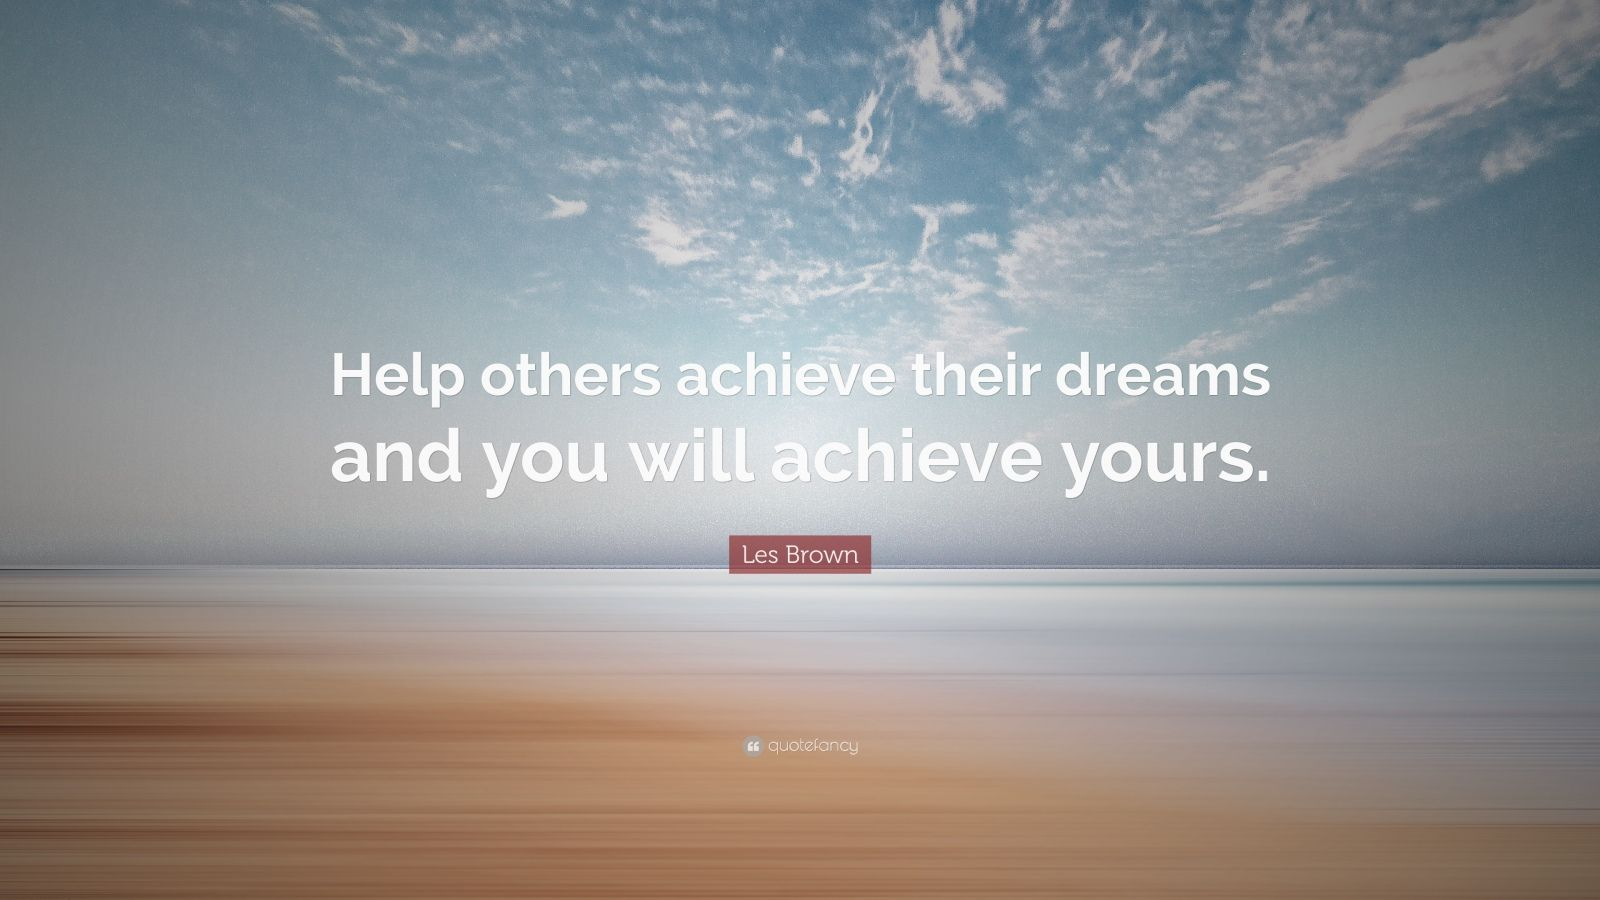 First Love Wallpapers Quotes Les Brown Quote Help Others Achieve Their Dreams And You